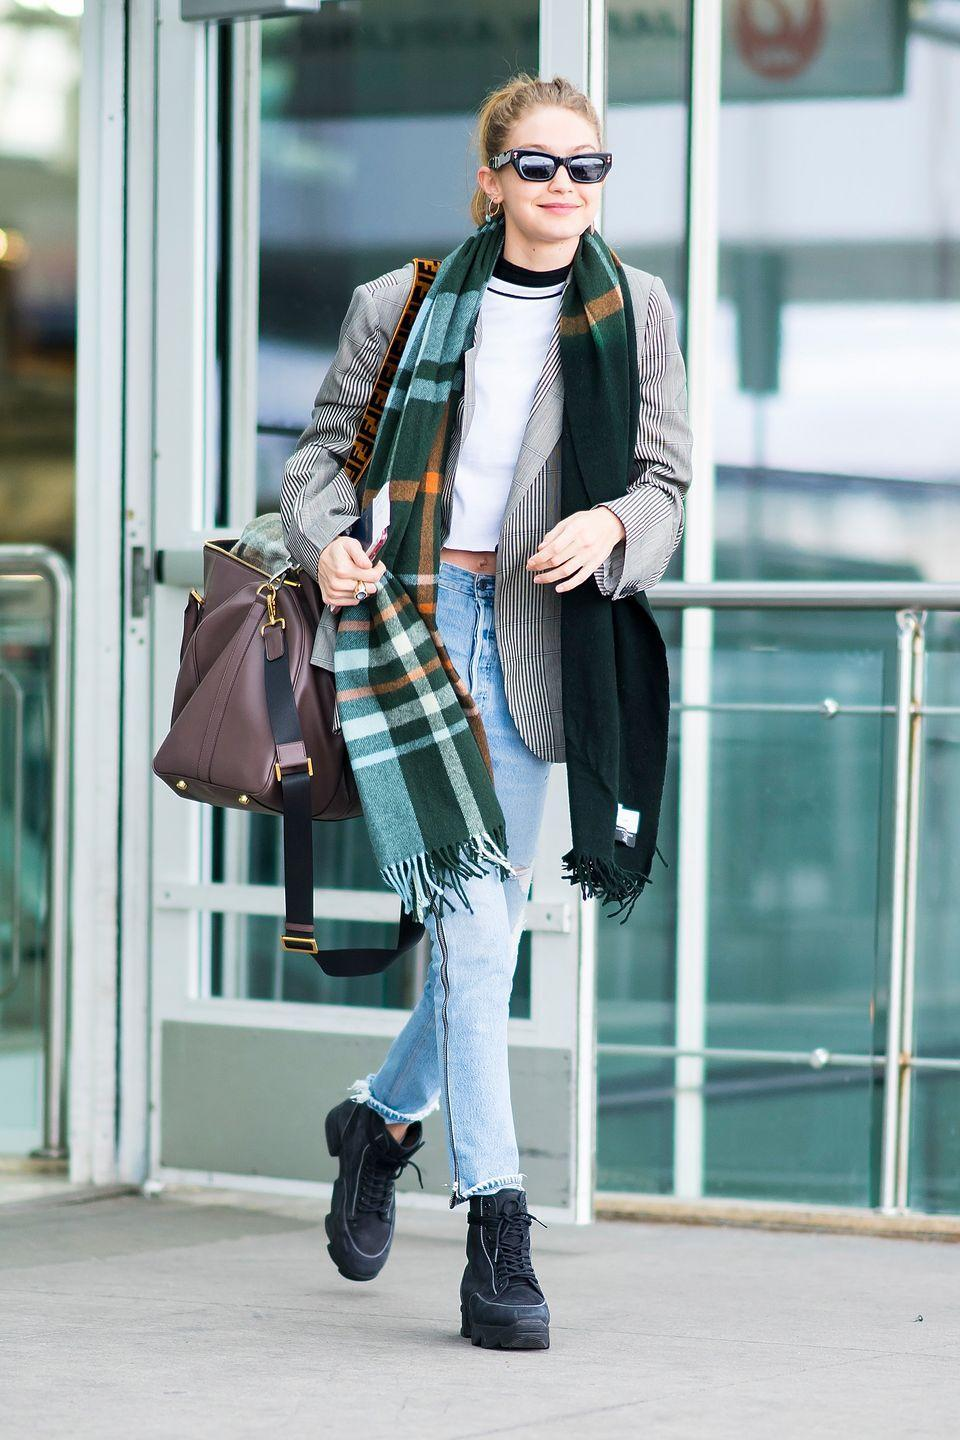 <p>wearing light-wash high waisted jeans, a white t-shirt, a striped blazer, a green plaid scarf, black lace-up boots, and a oversized leather shoulder bag.</p>